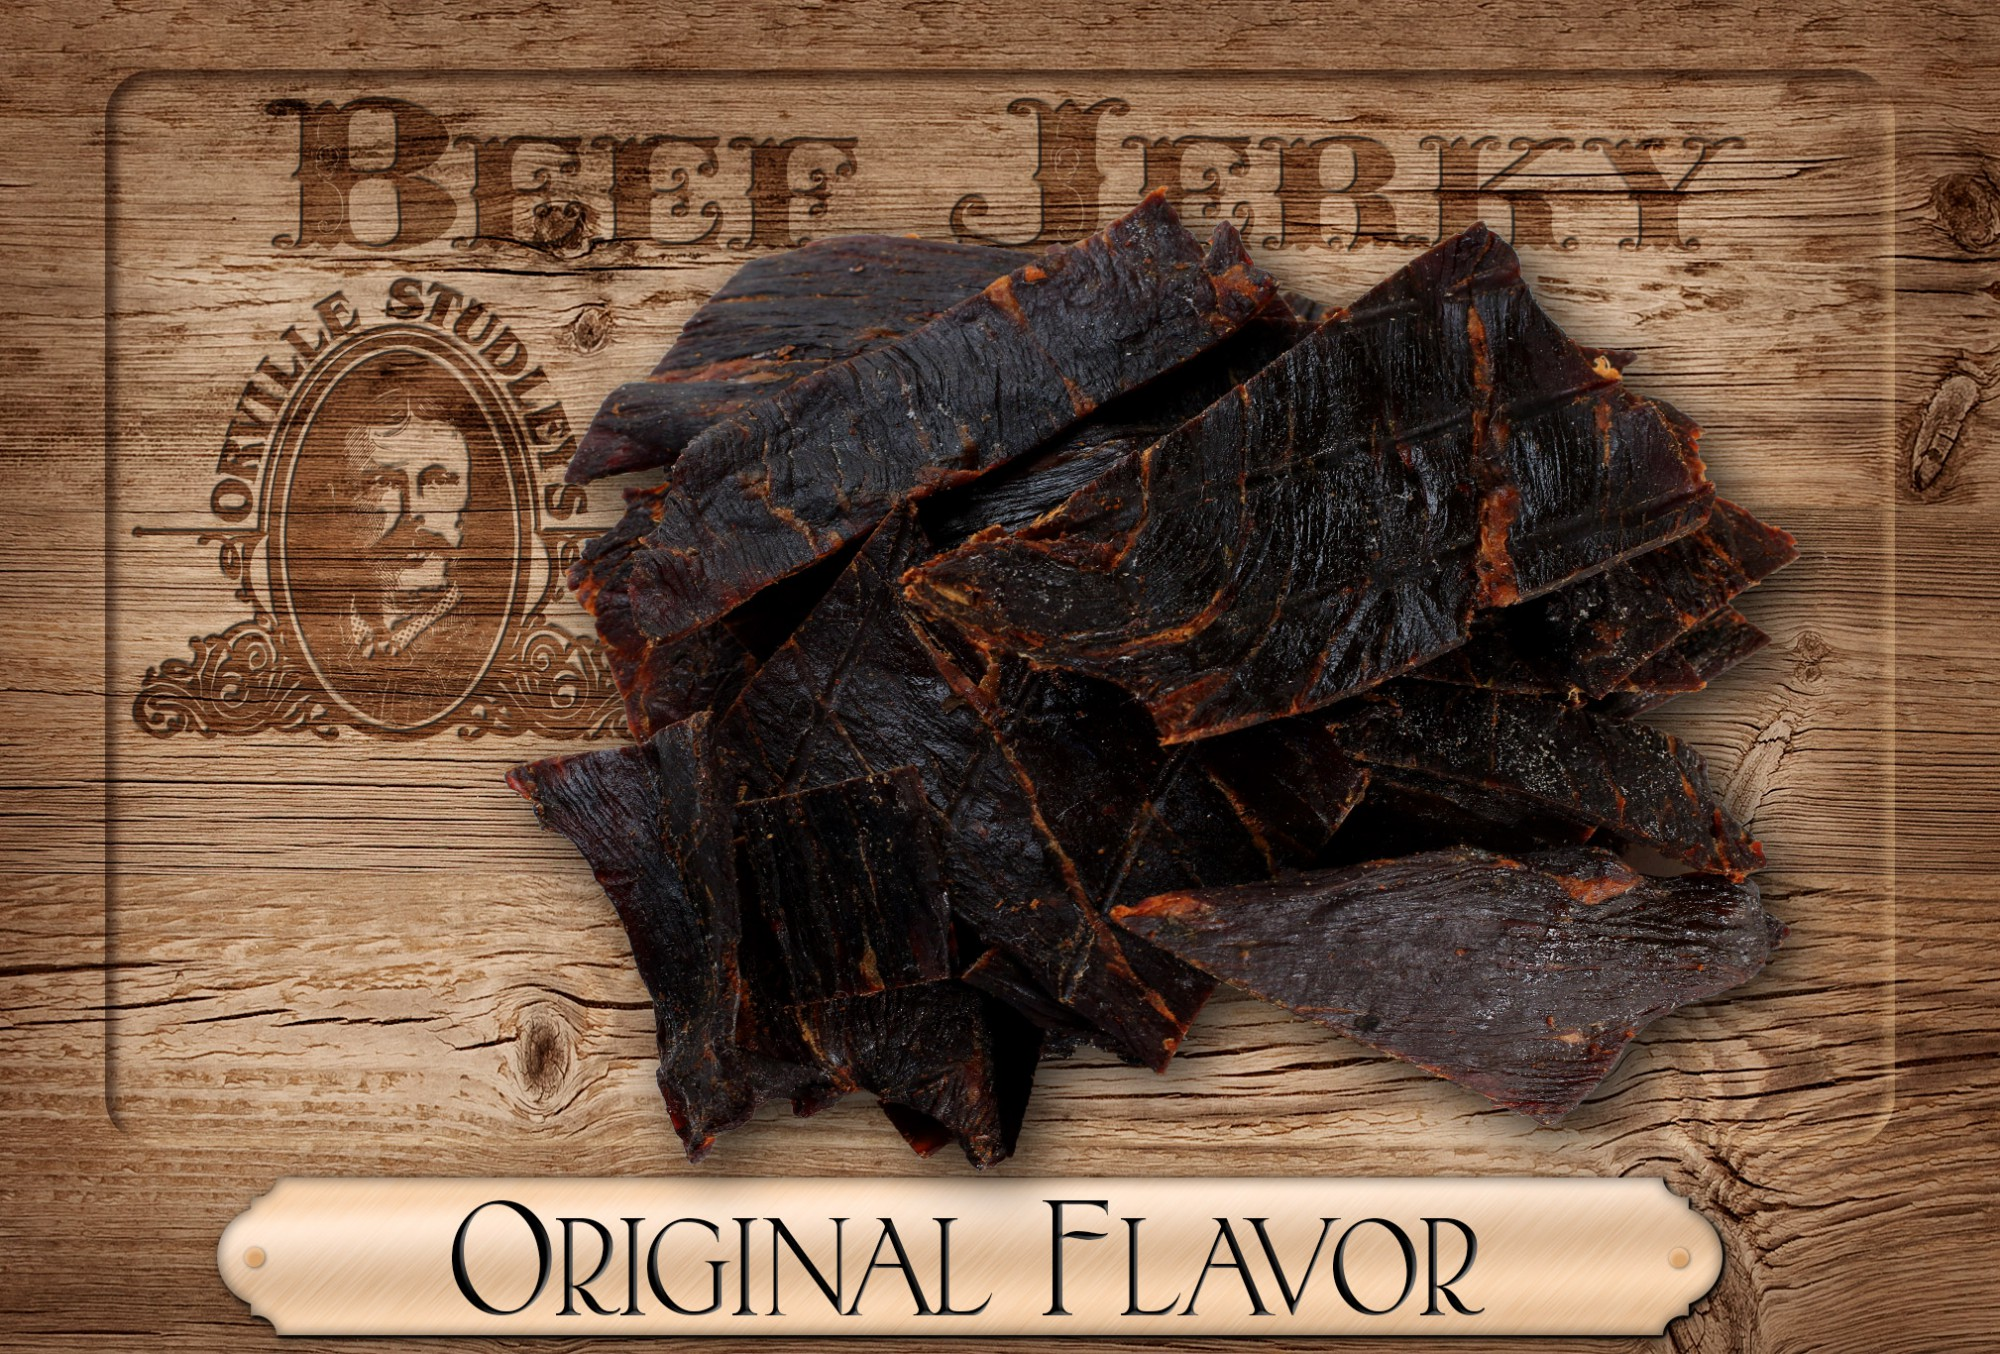 Best Original Beef Jerky by Orville Studley